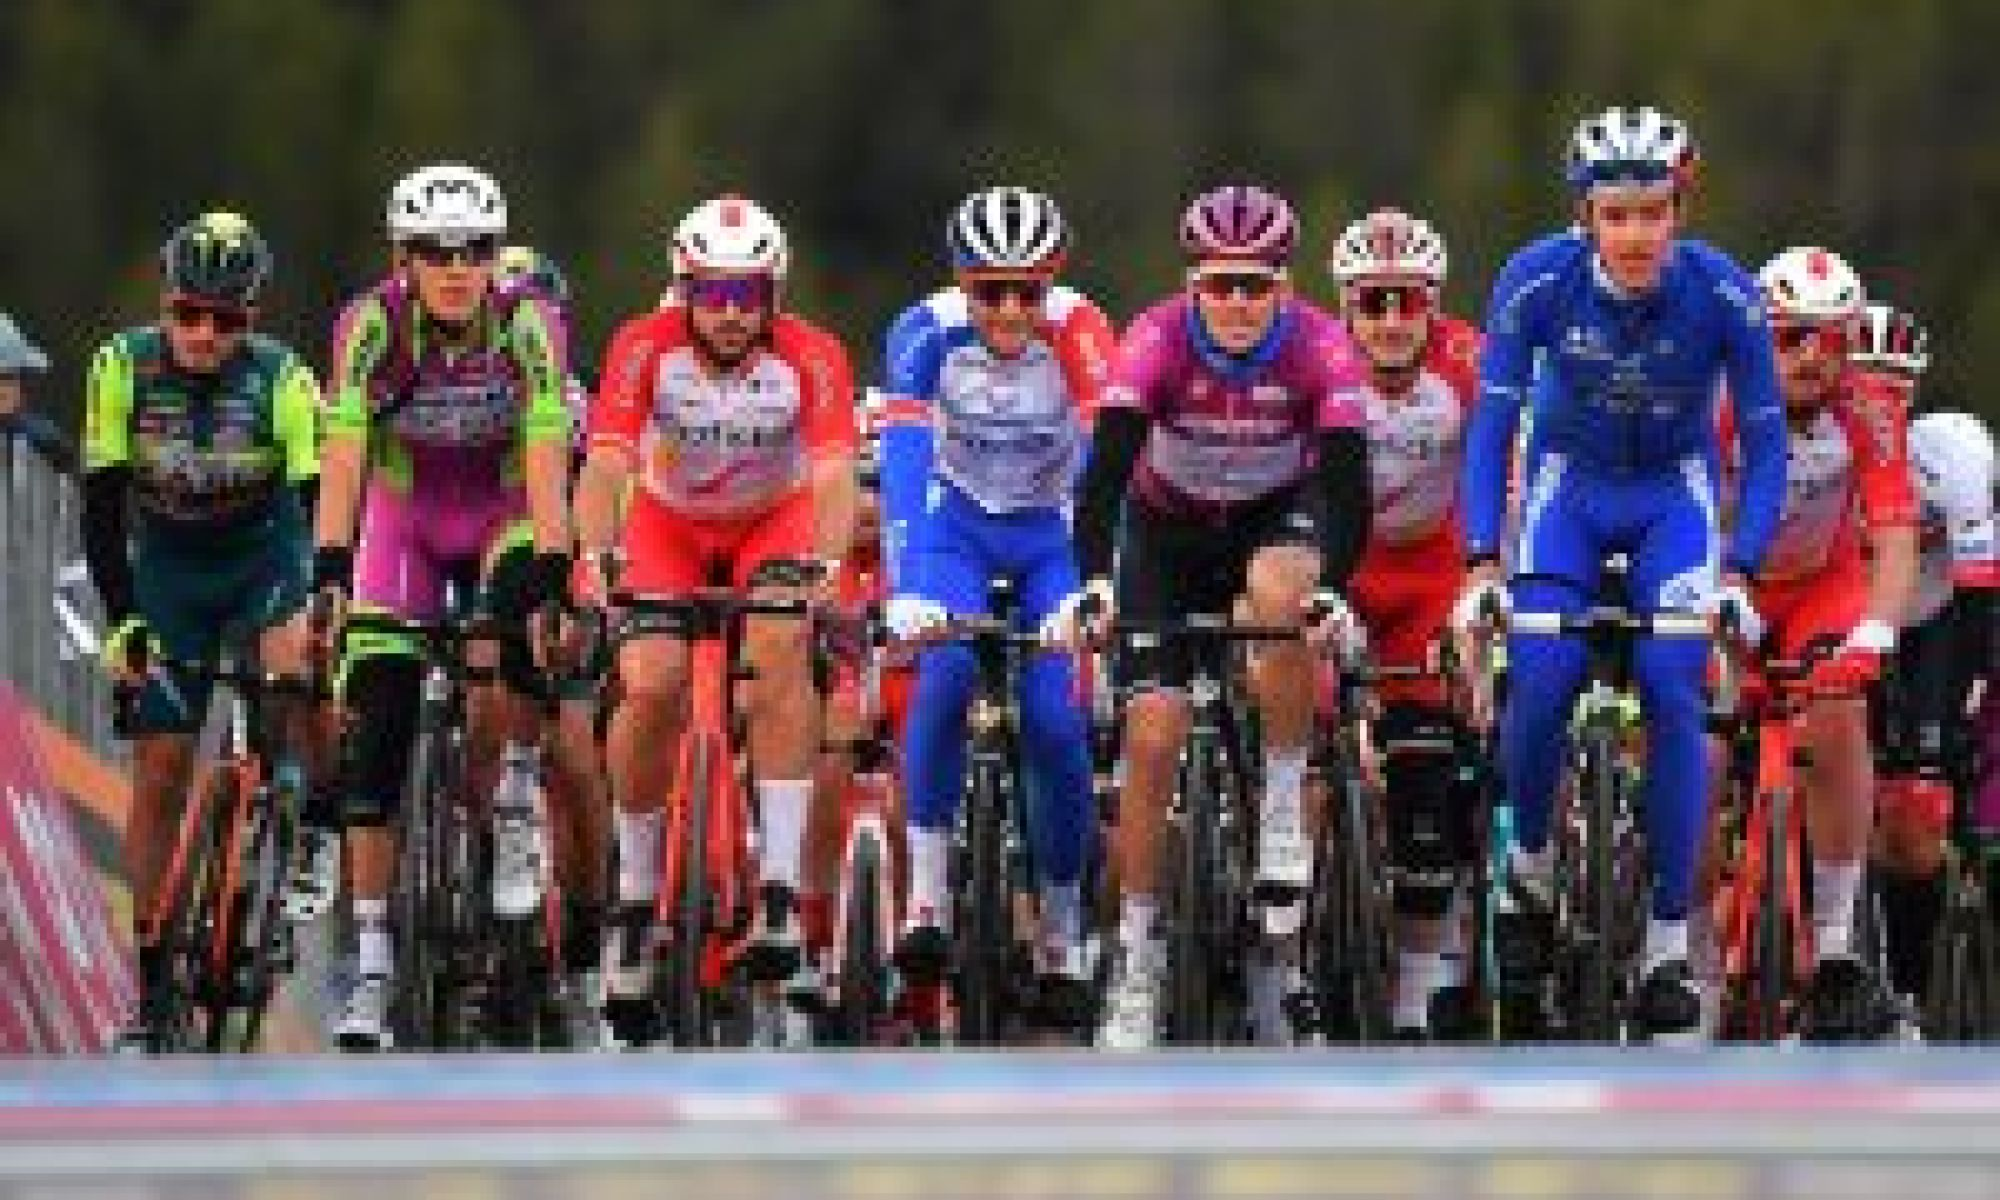 <div>Giro d'Italia stage 19 shortened by 100km after riders refuse to race full course</div>